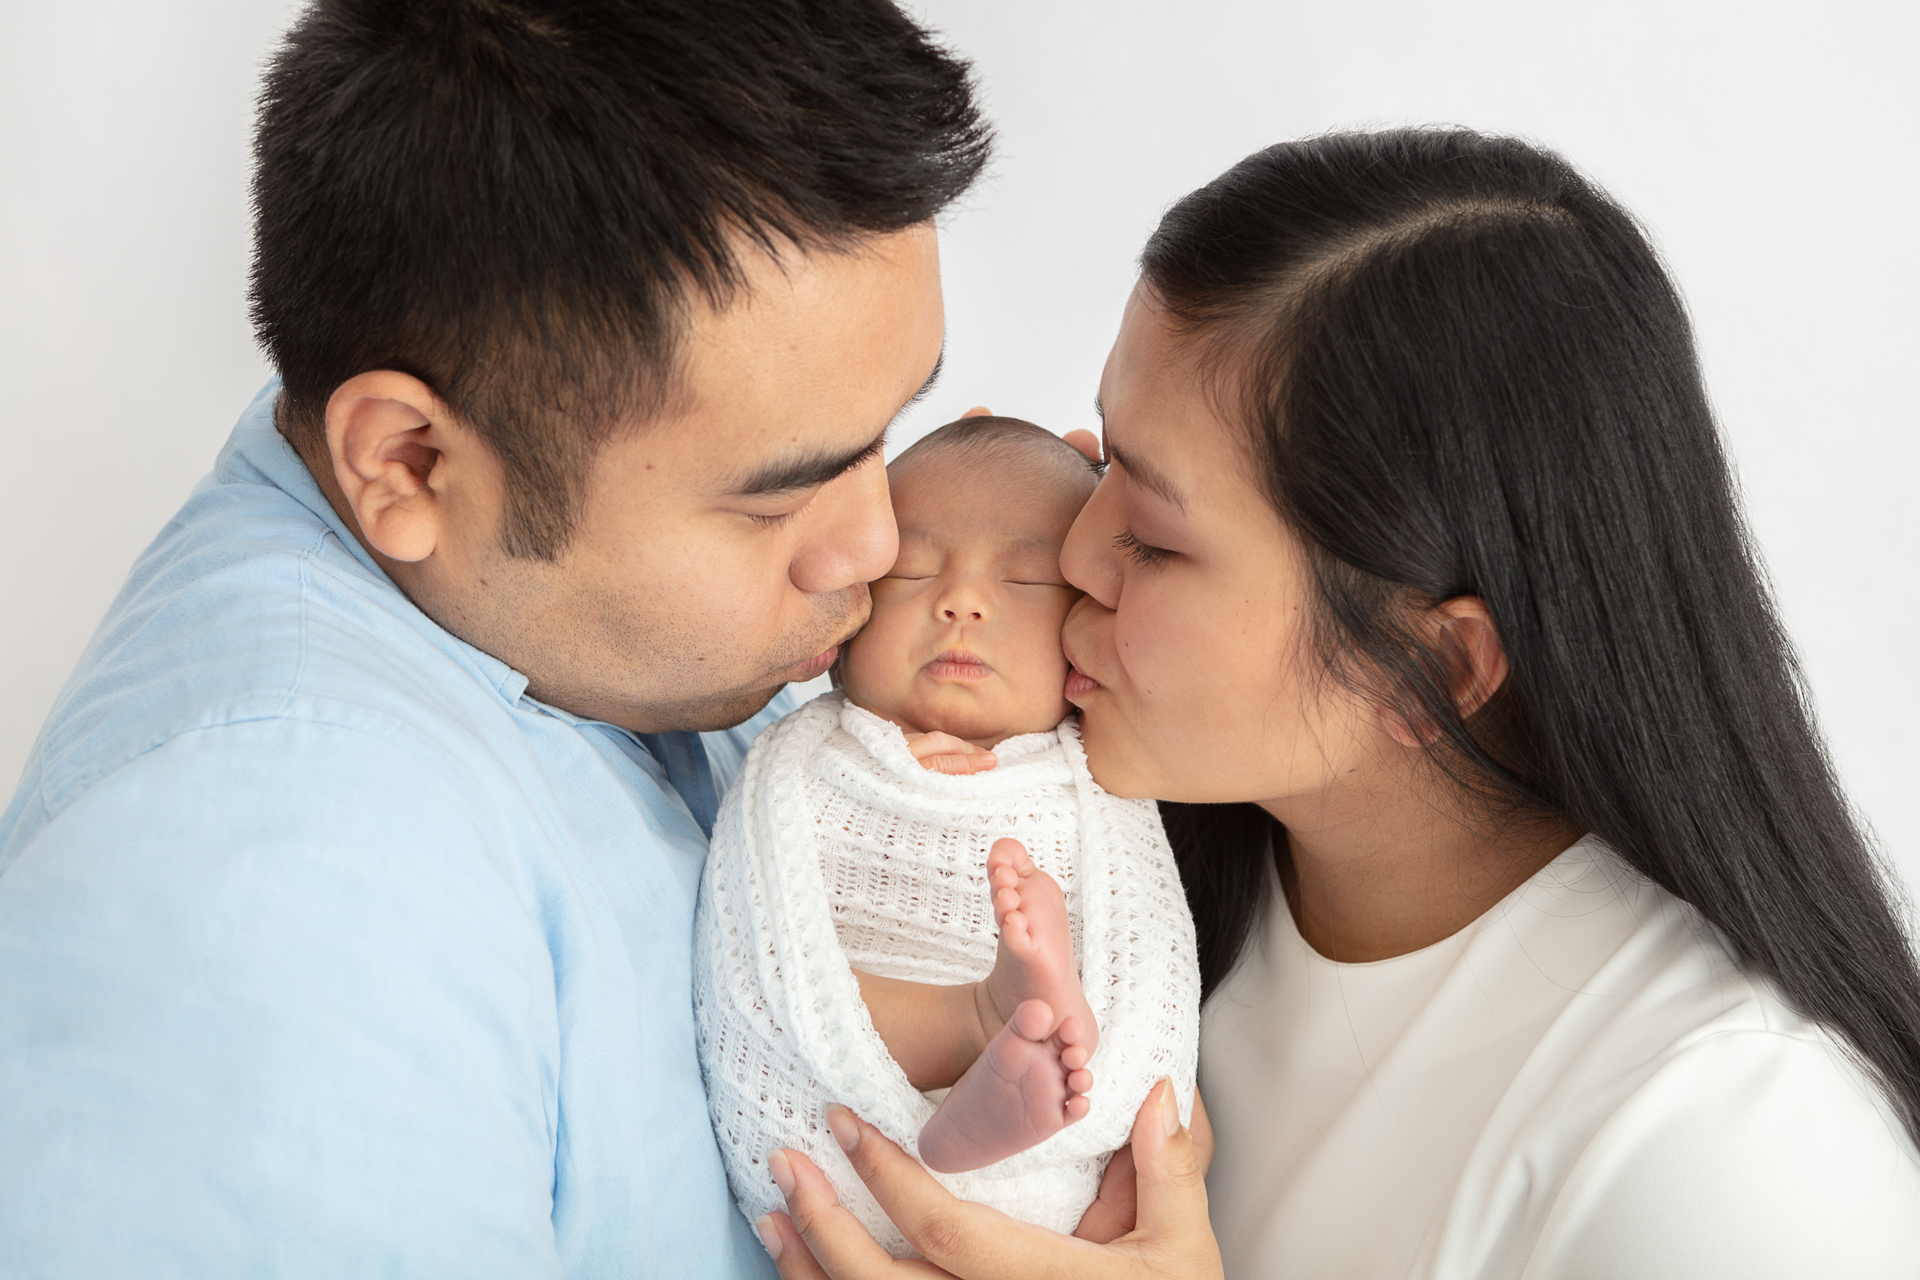 new father and mother kissing their newborn daughter's cheeks and holding her in between them